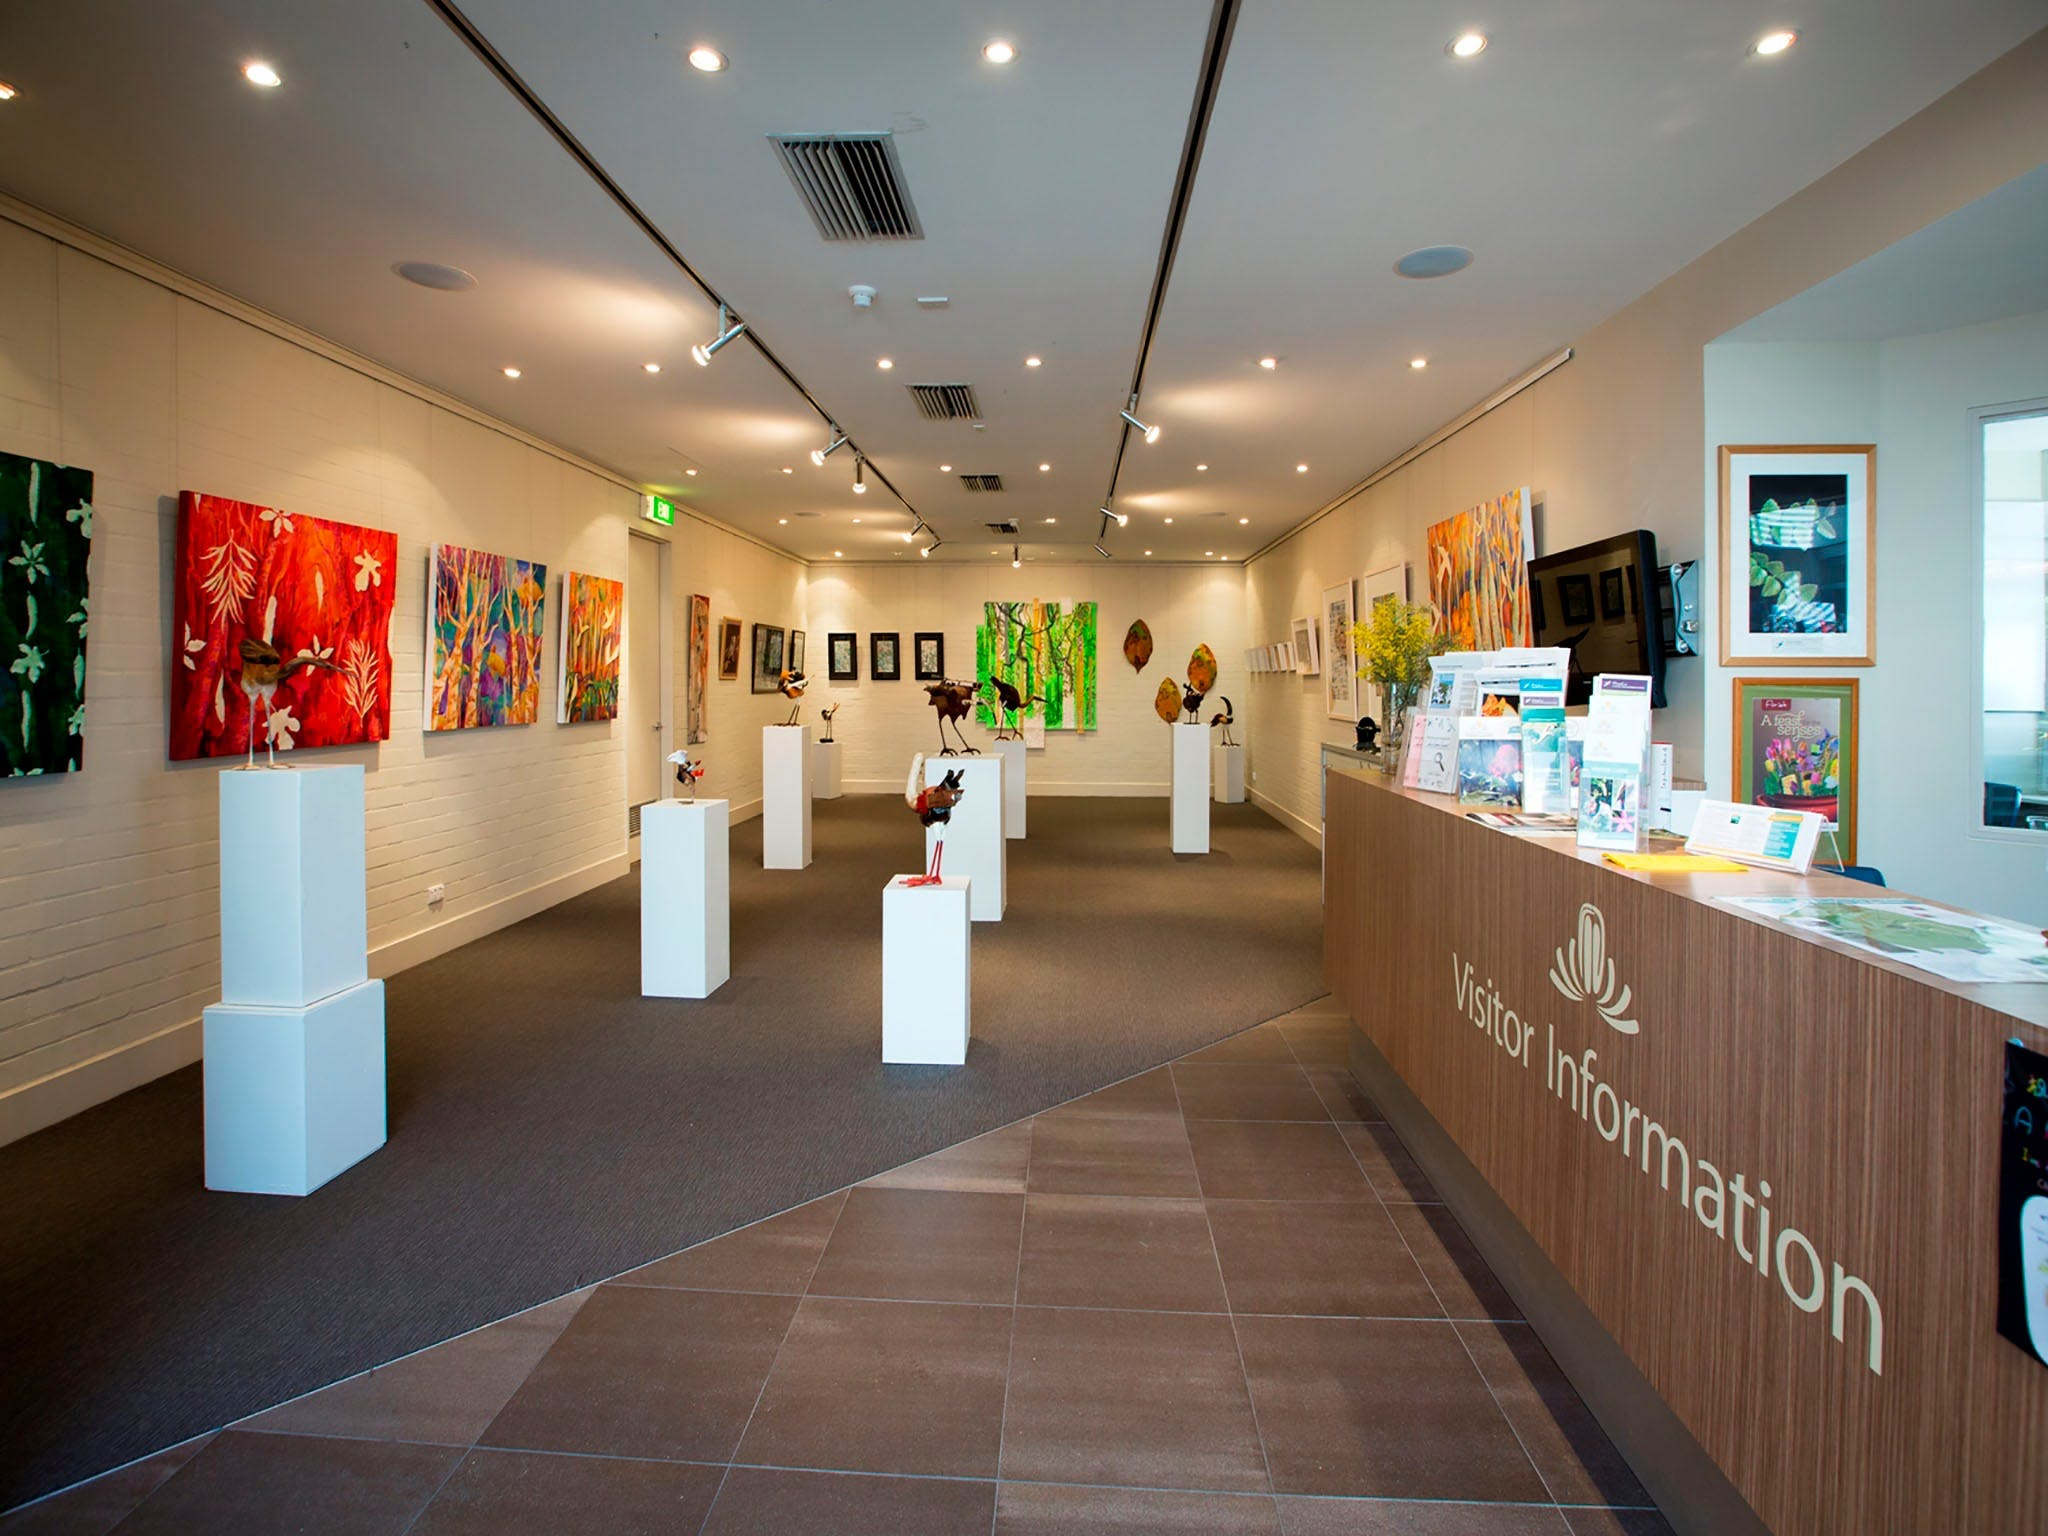 Australian National Botanic Gardens Visitor Centre Gallery - Accommodation Port Hedland